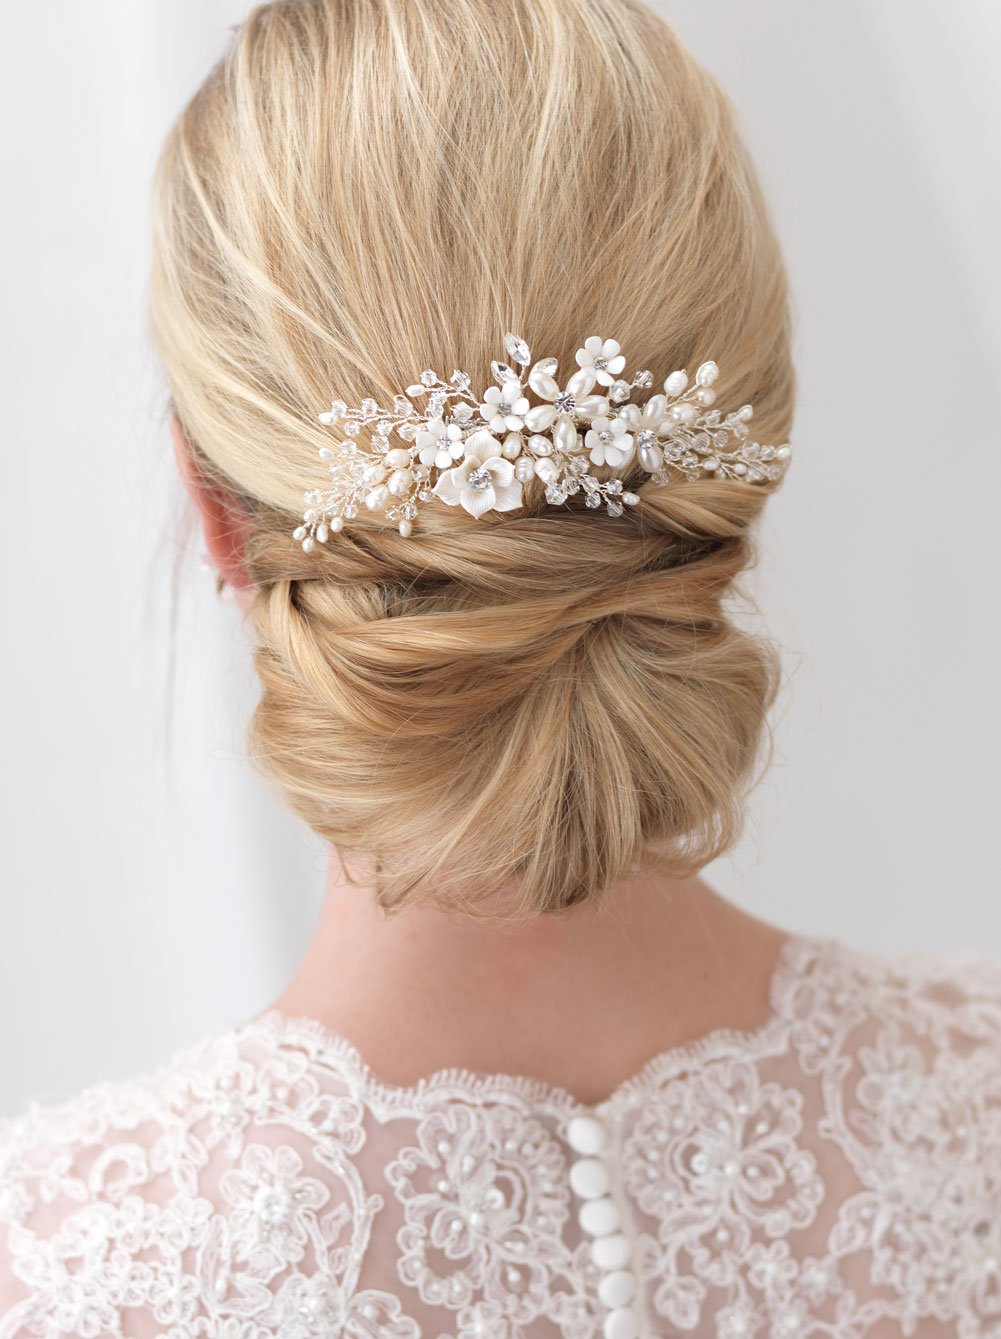 USABride Wedding Comb Silver-Plated Floral Bridal Headpiece Simulated Freshwater Pearls Crystals Rhinestones TC-2291